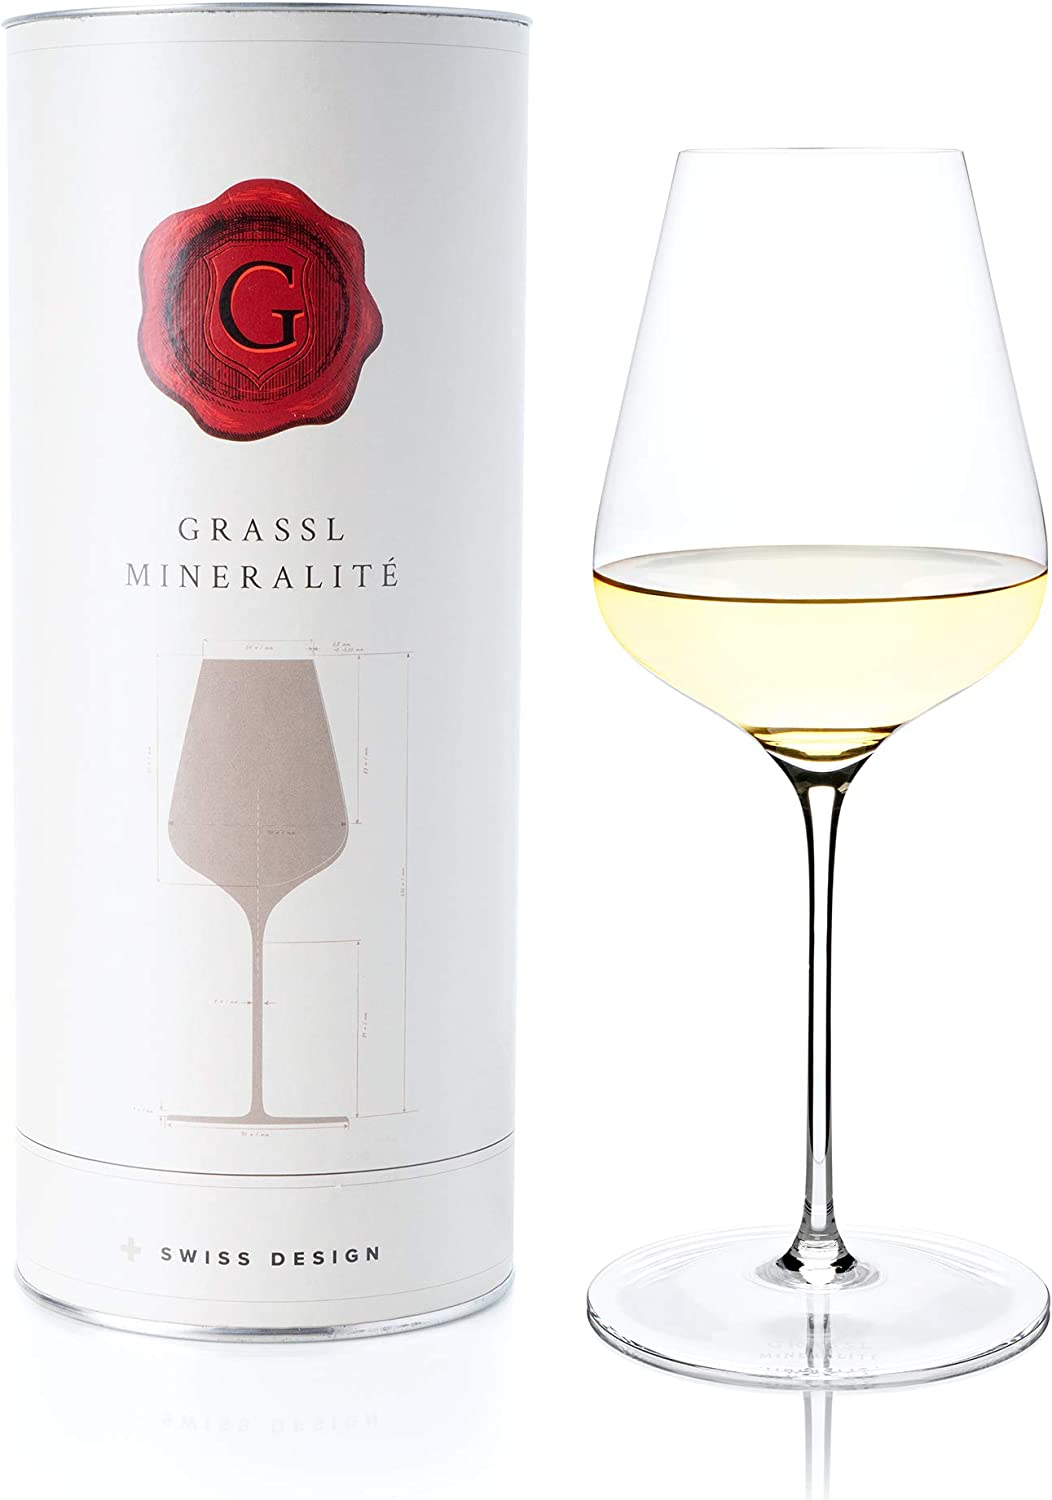 Grassl-Mineralité-Wine-Glass,-Hand-Blown-Crystal-Wine-Glass-for-White-Wine-and-Champagne-Single